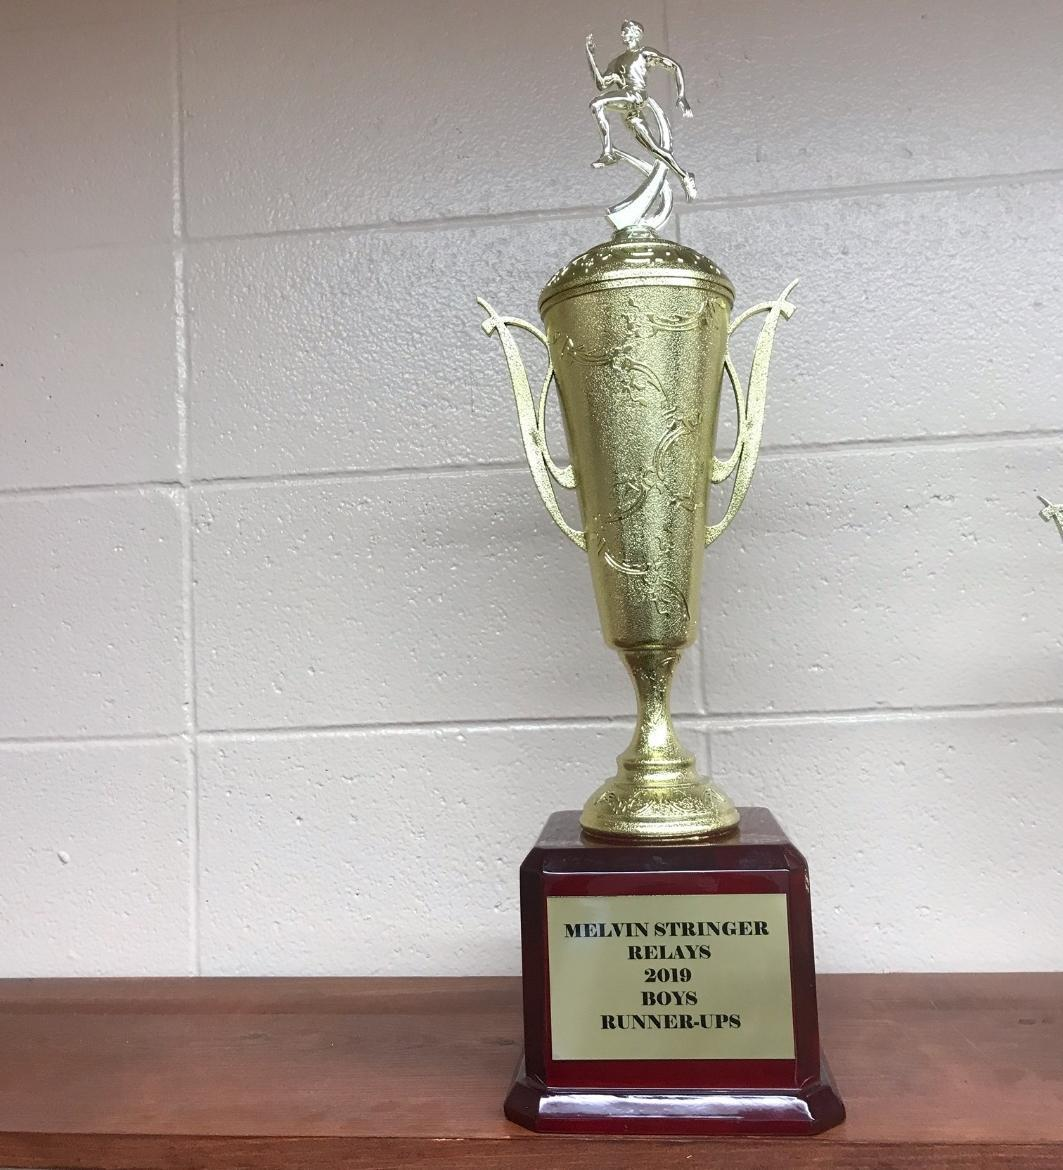 BHS Boys Track Team Trophy from win at Melvin Stringer Relays